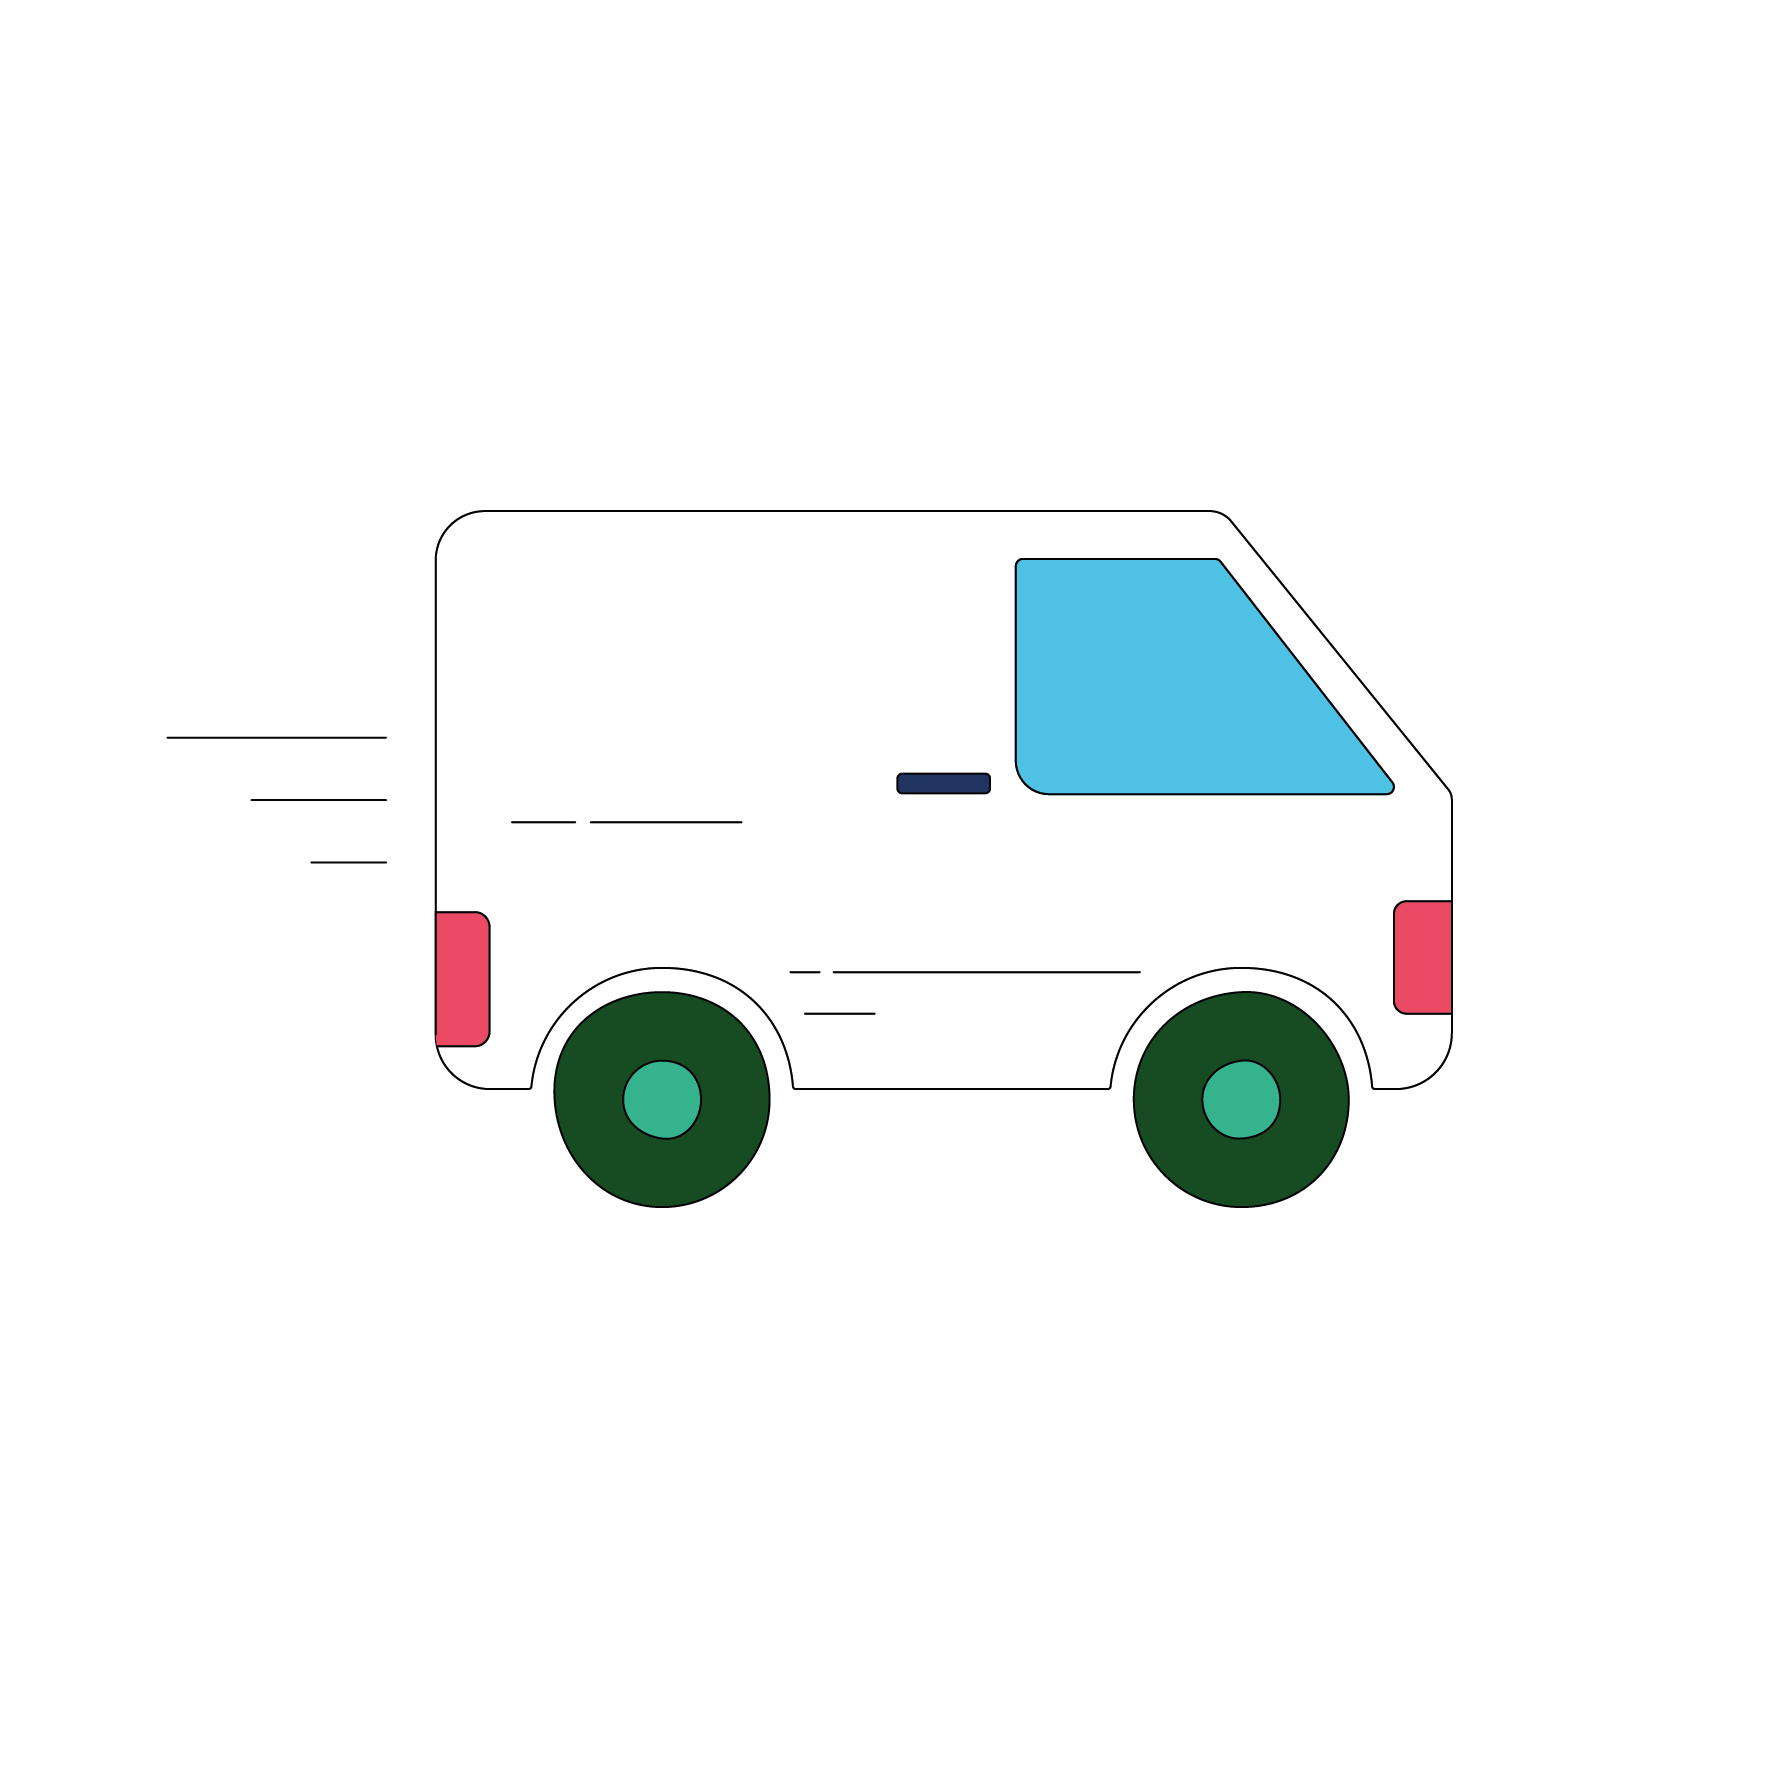 Icon depicting a van returning a customers' photos after they have been scanned.